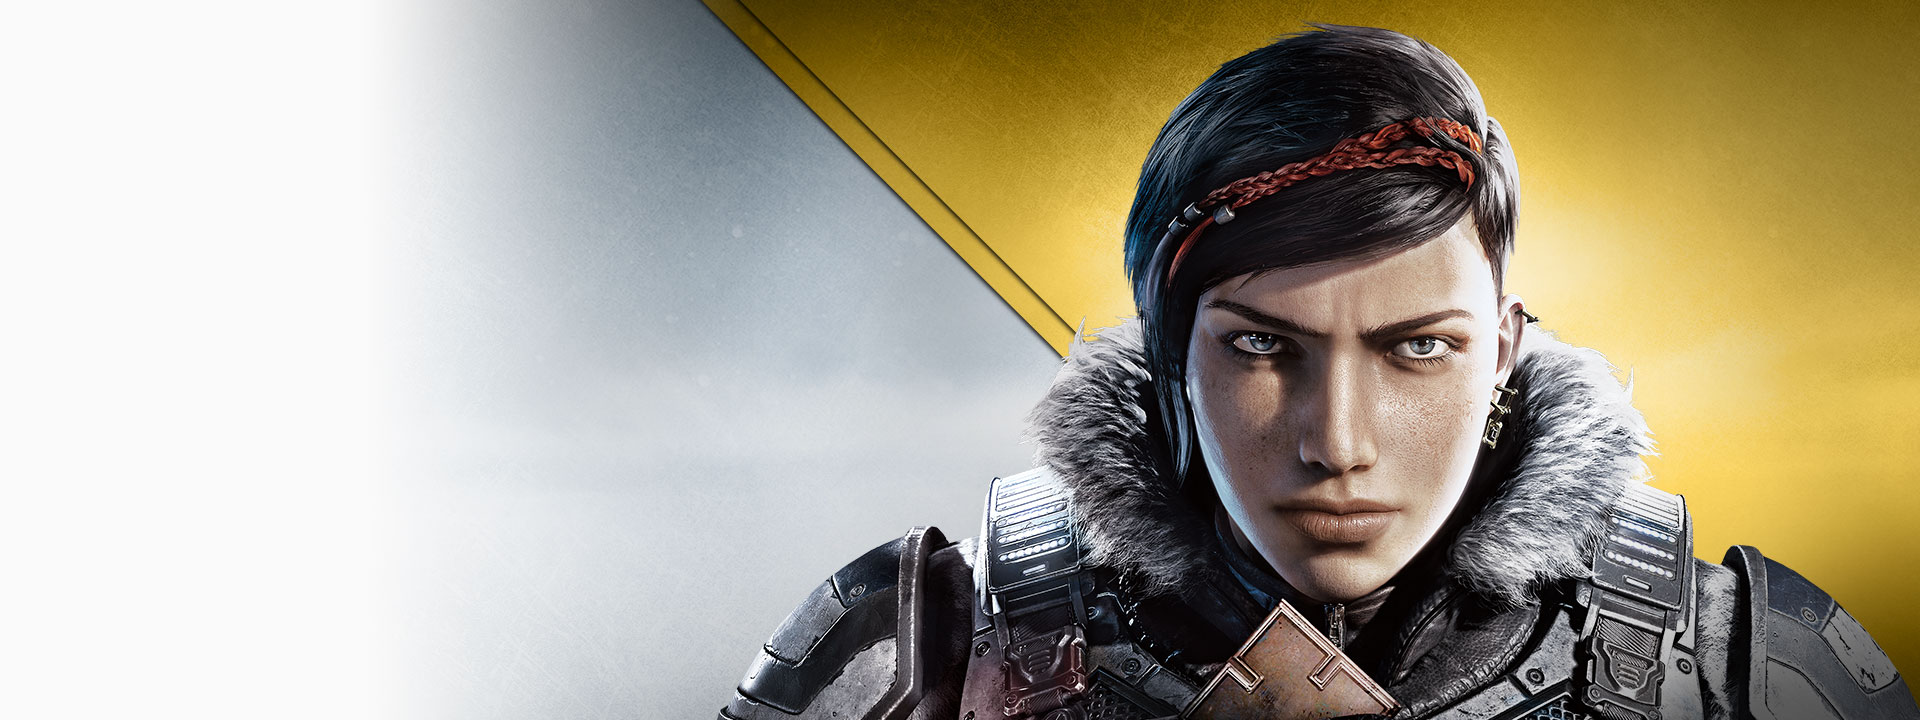 Gears 5, silver and gold background with Kait Diaz staring intensely at the camera